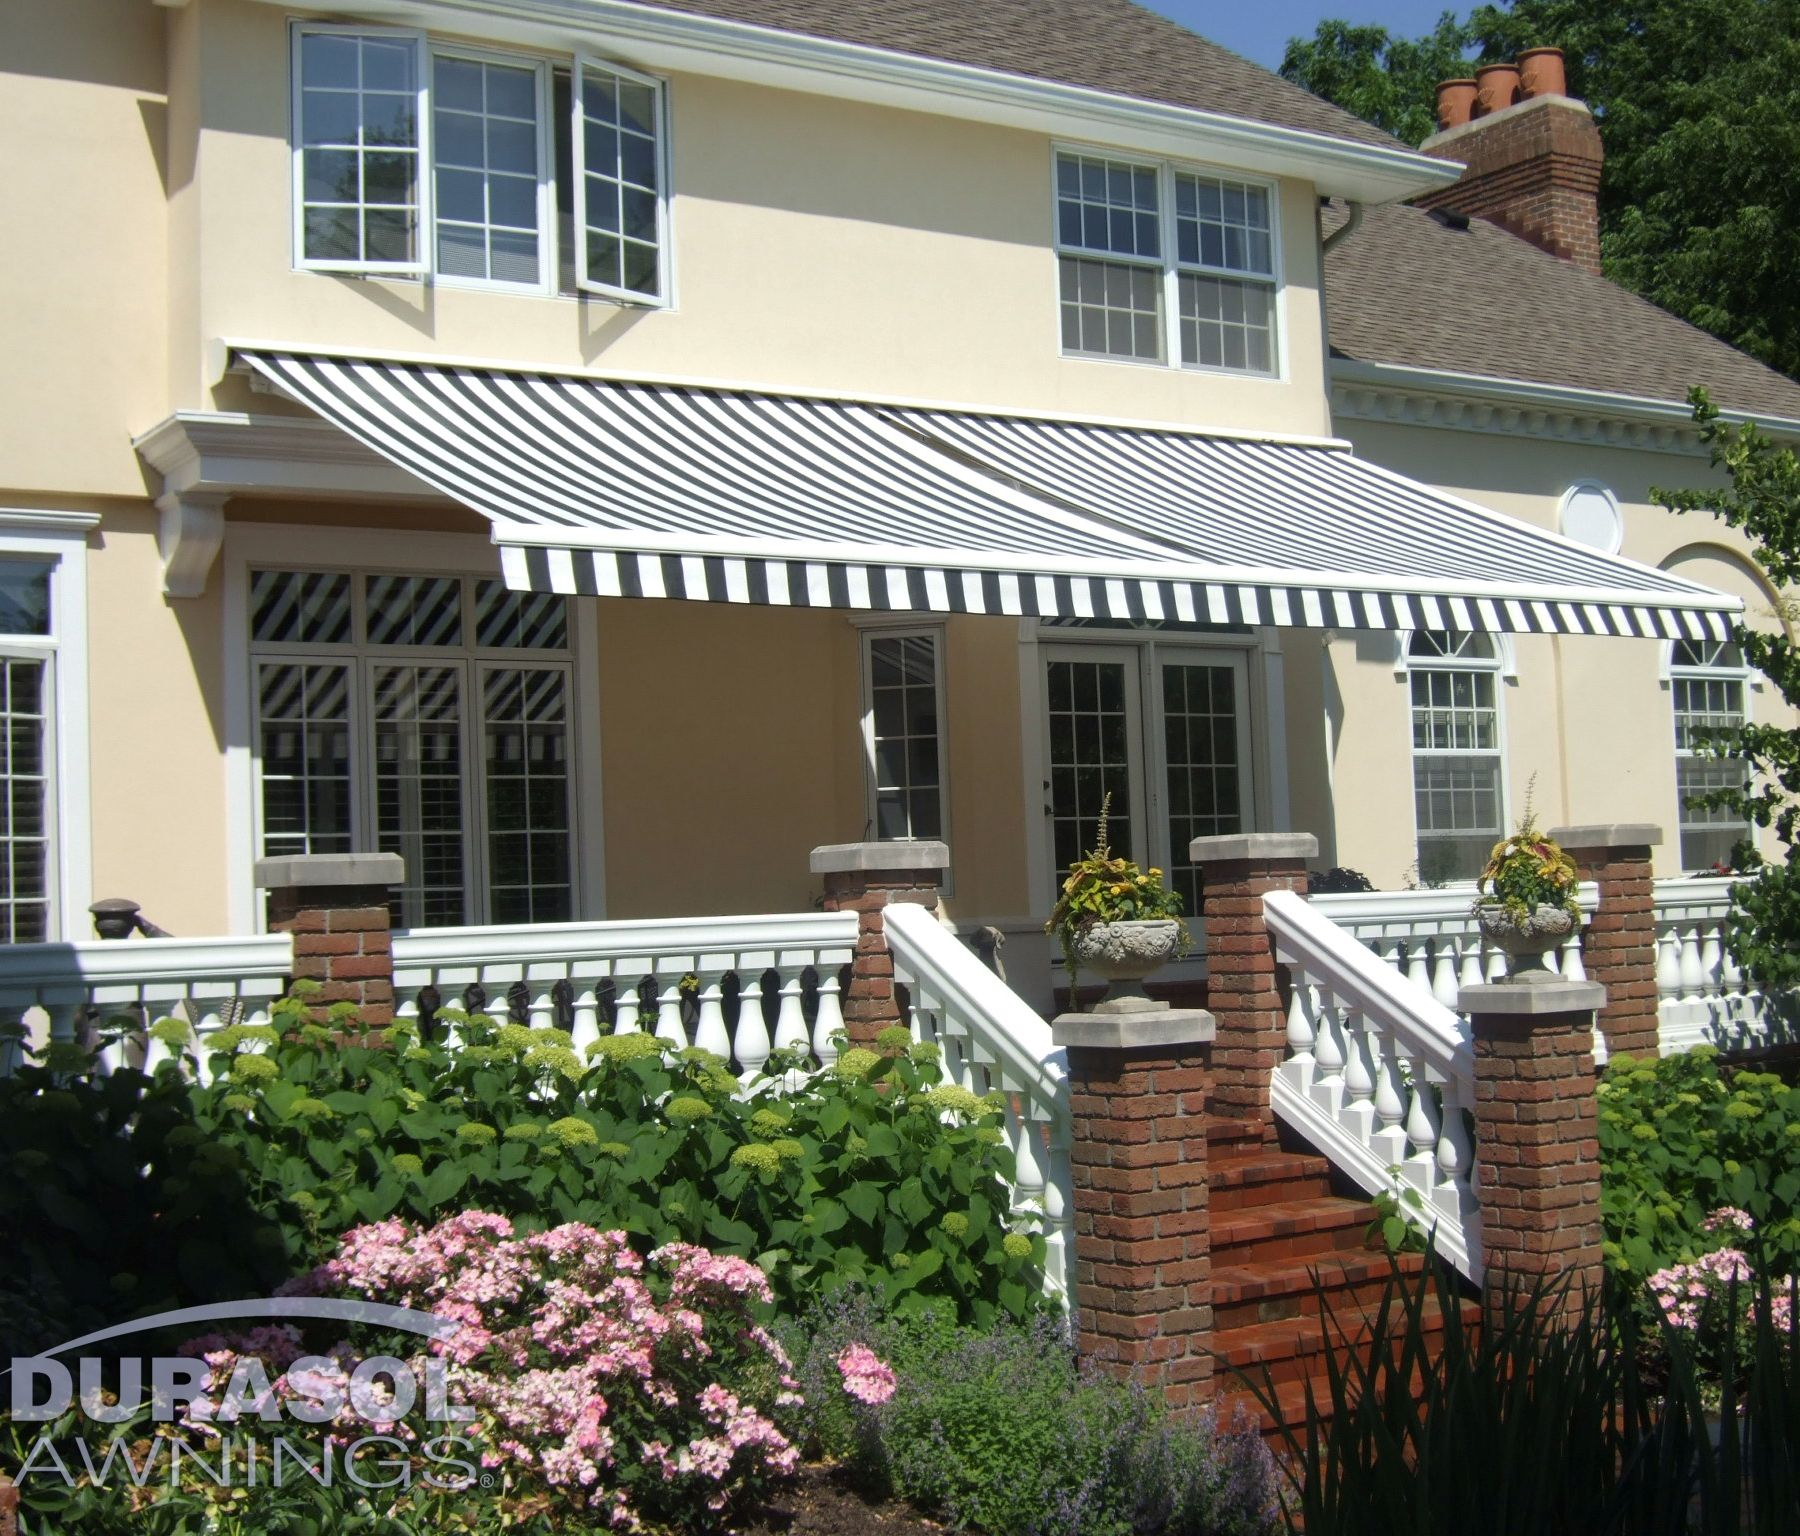 Durasol Awnings | Deck U0026 Patio | SunShelter Family | Elite Plus